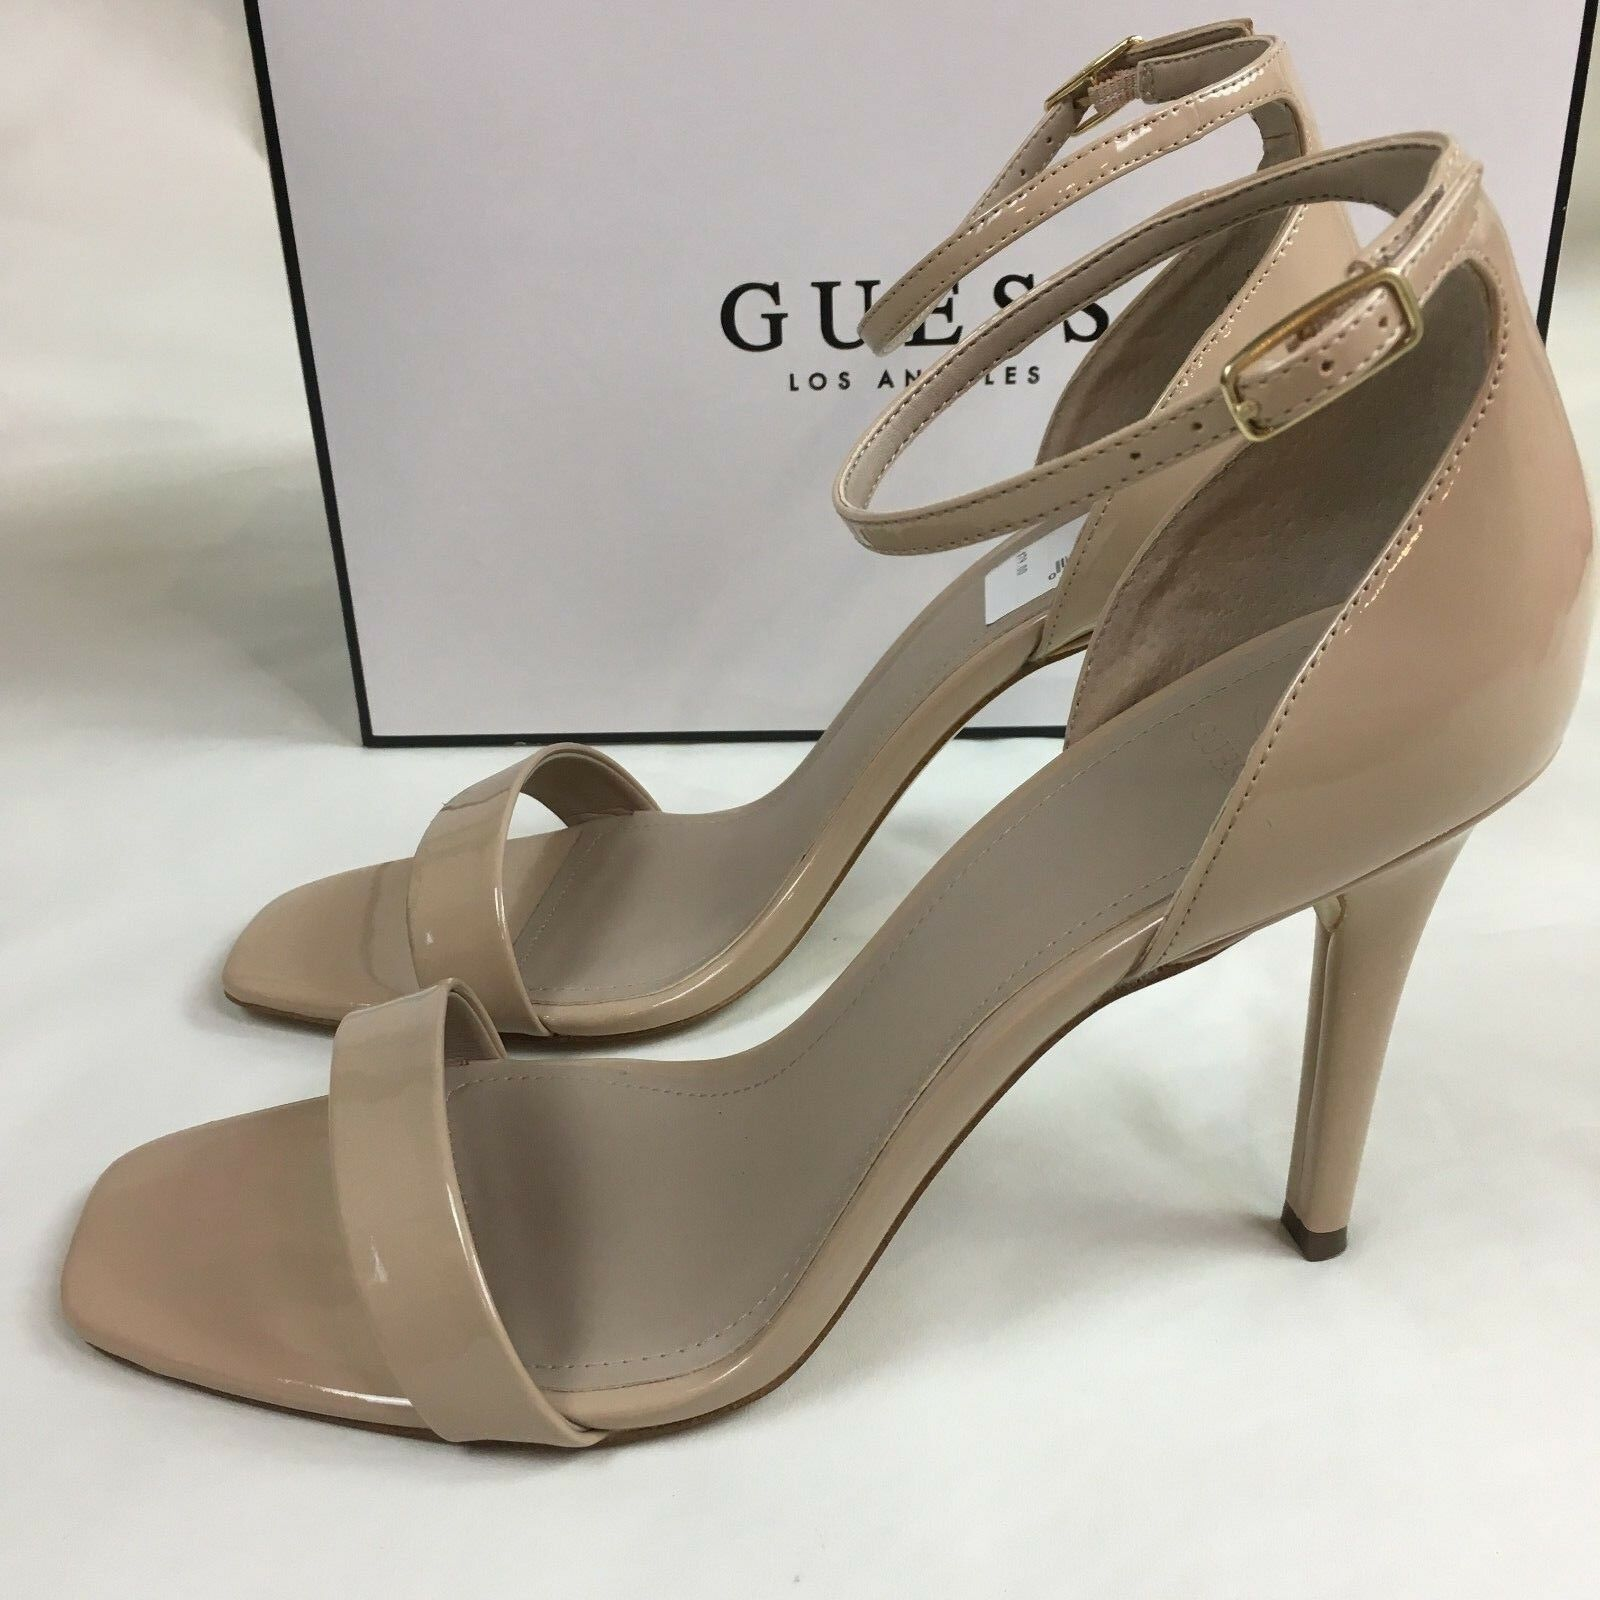 Guess Damens Light Natural LL Nude Celie 3 Sandale Heel Schuhe Career Work Größe 10 M